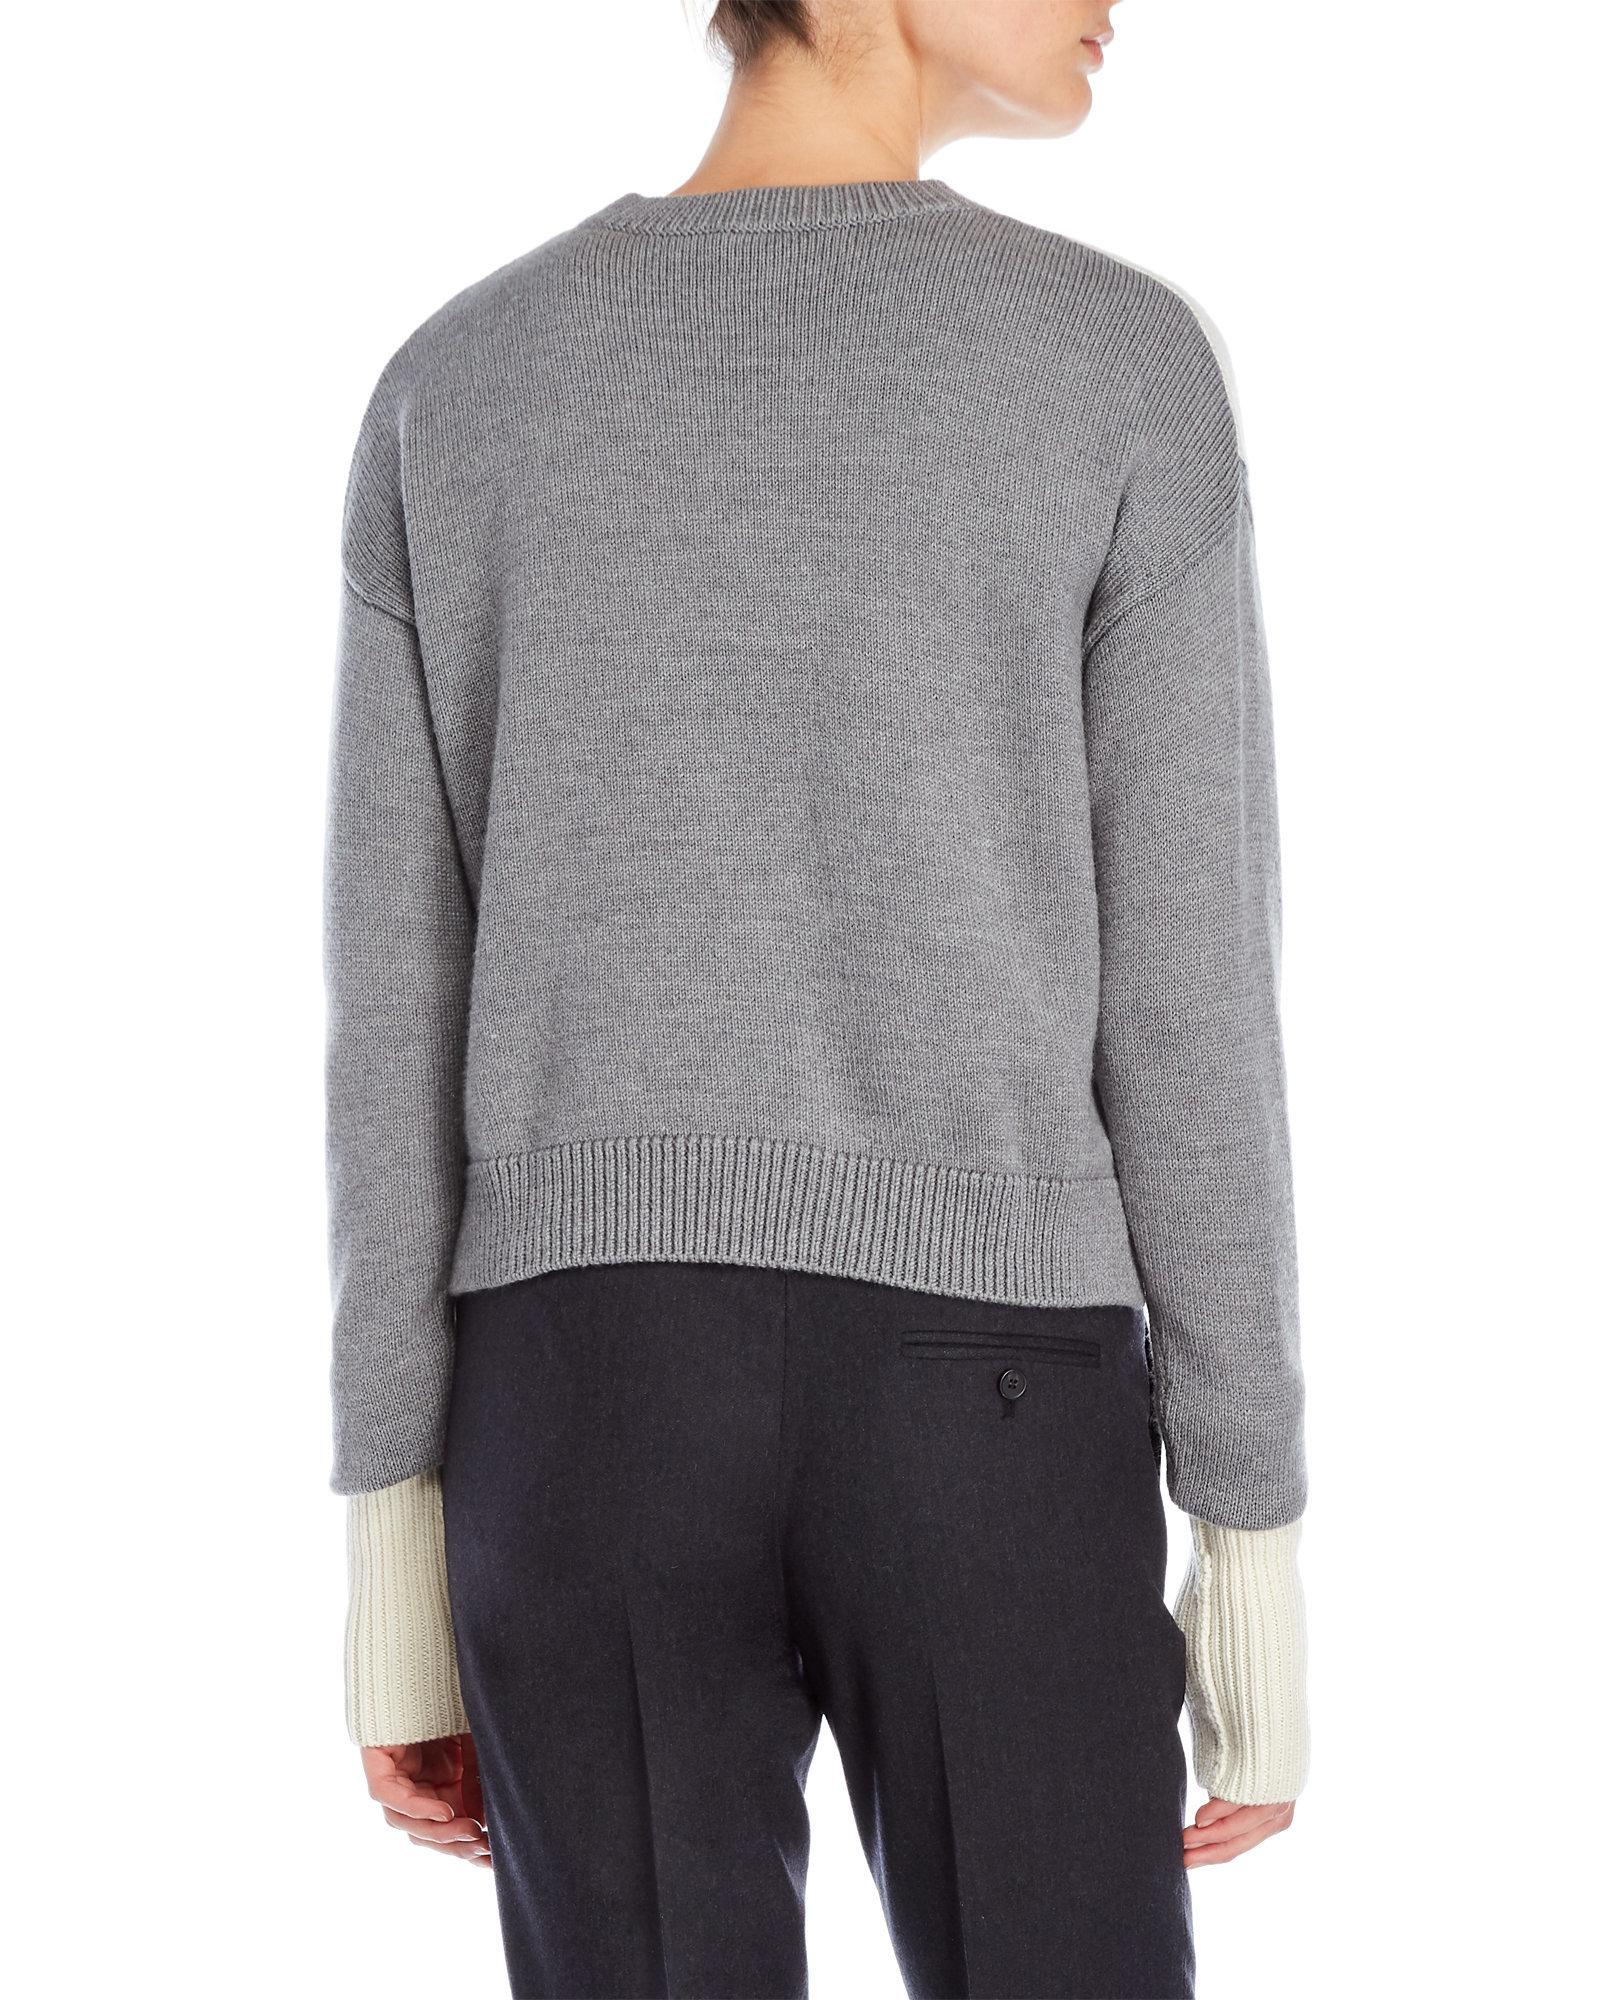 Jil sander navy Printed Wool Cropped Sweater in Gray | Lyst